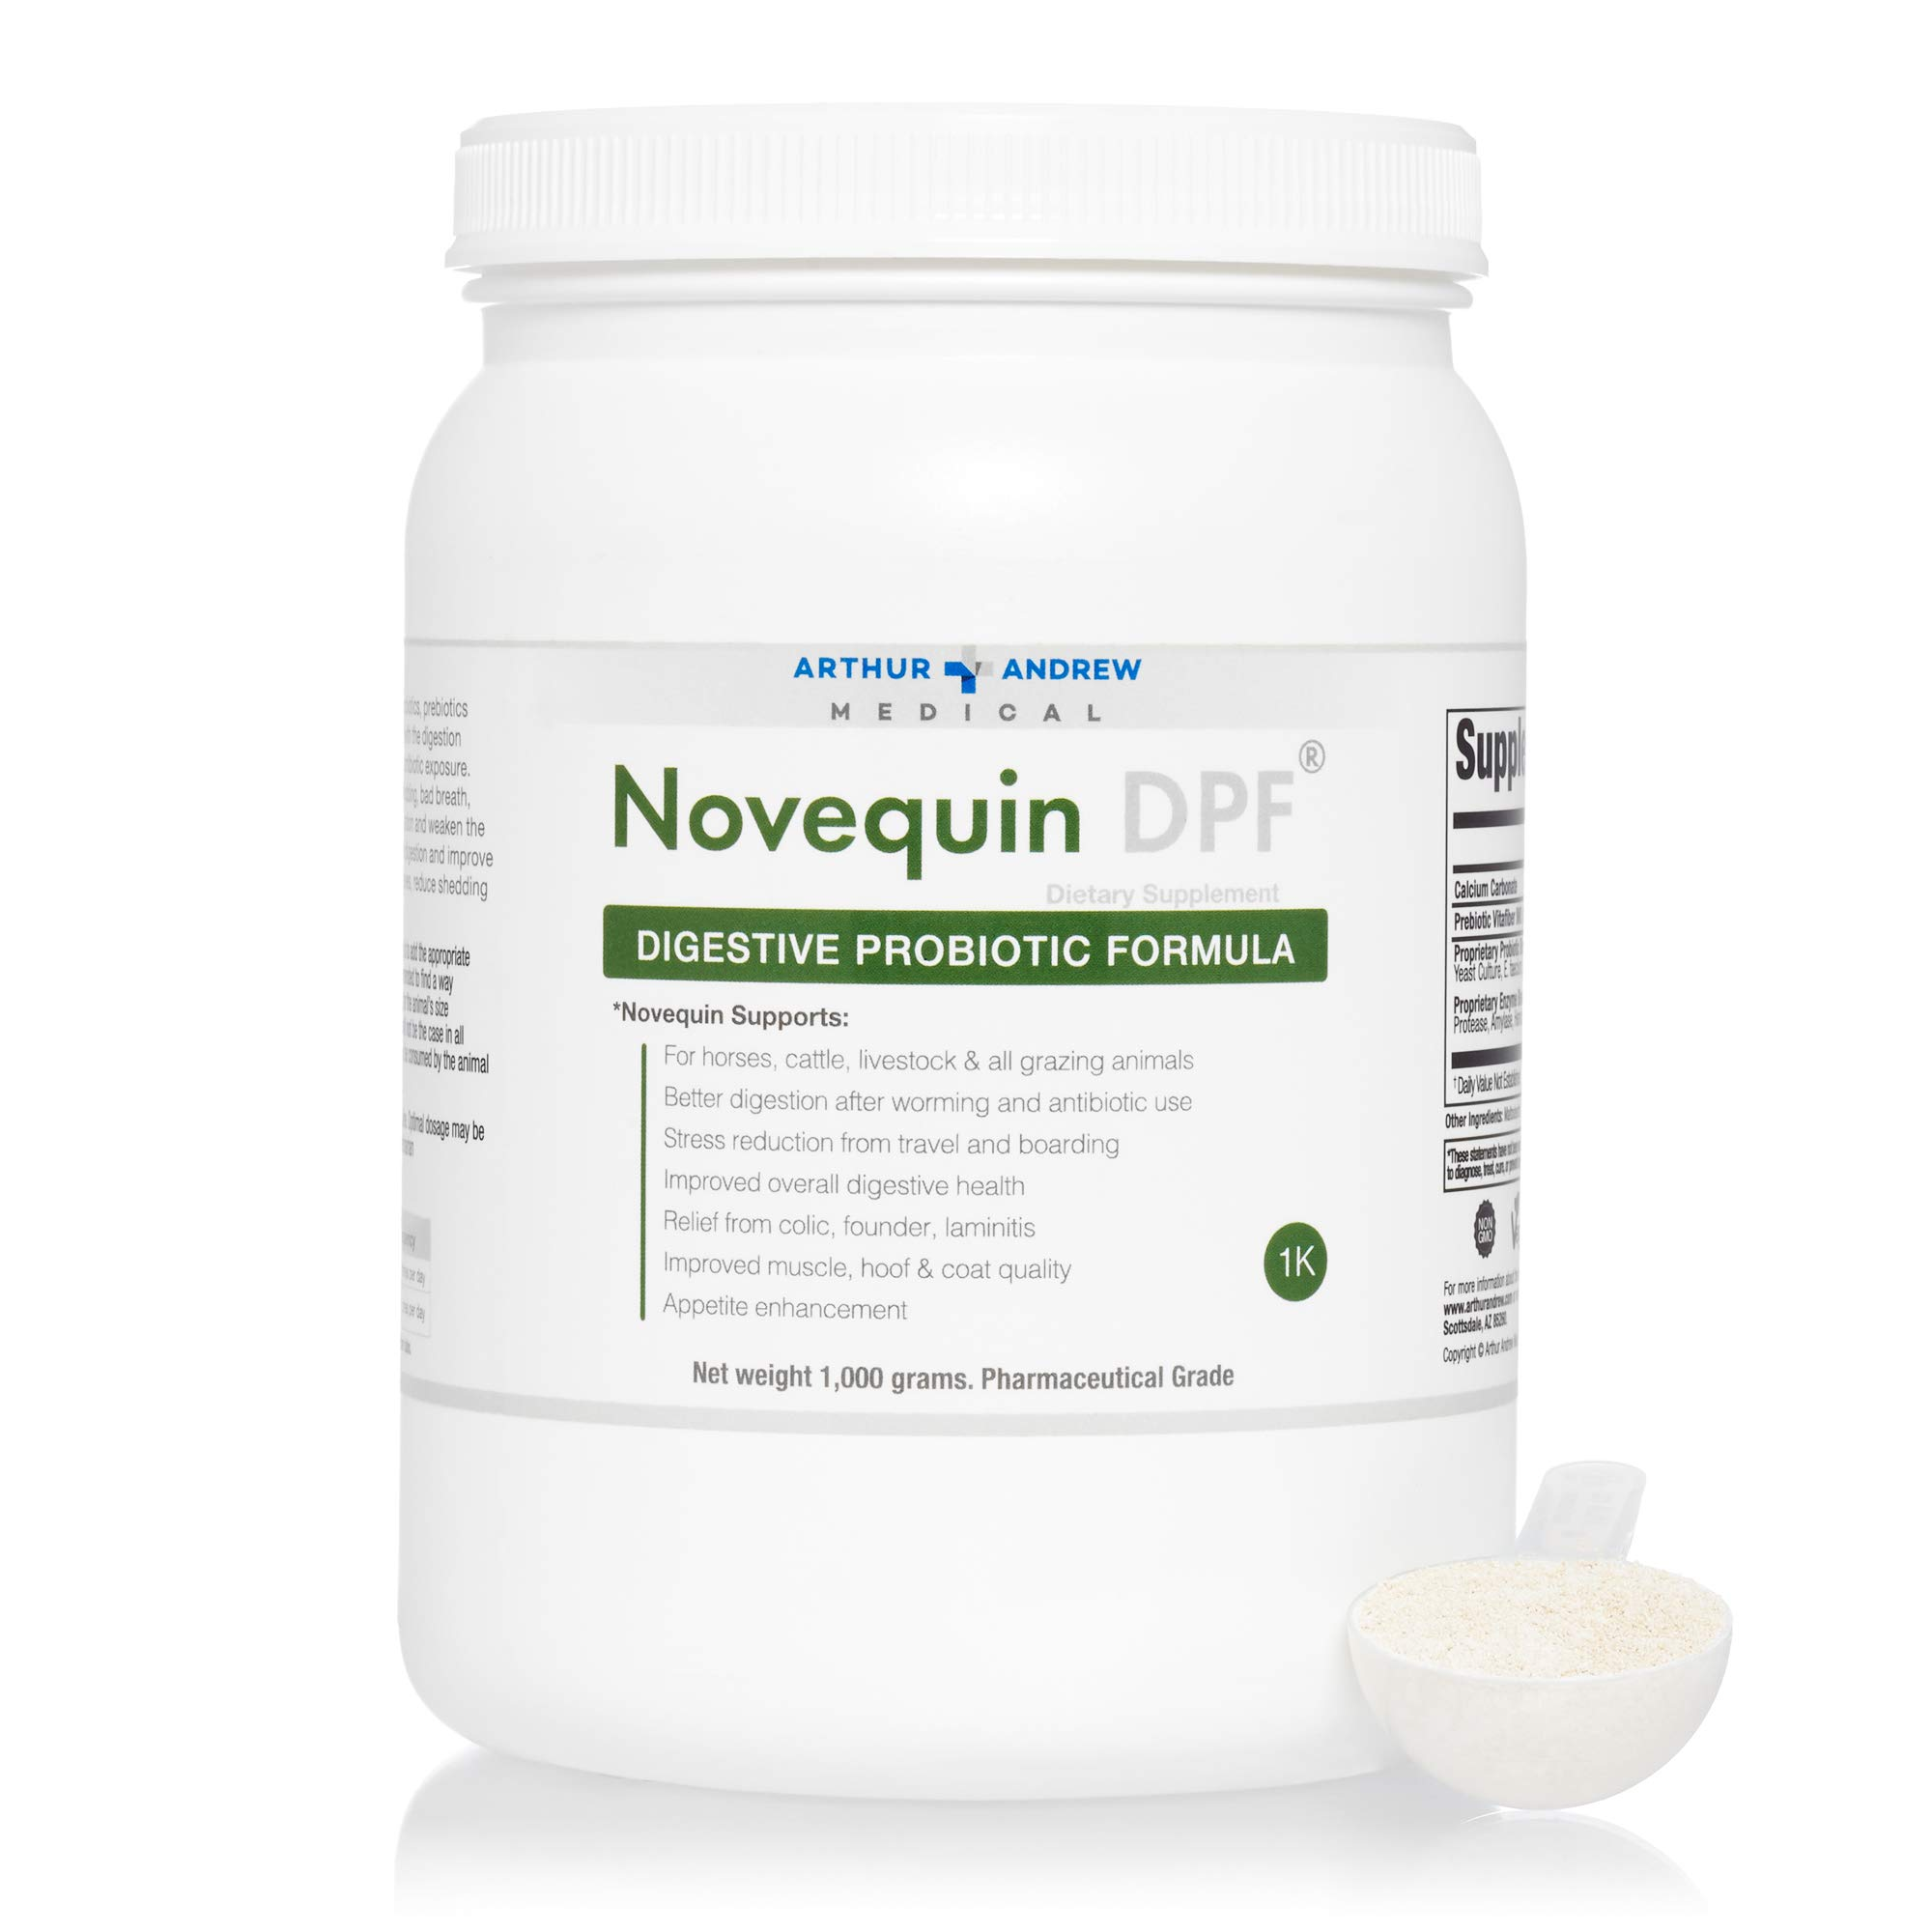 Arthur Andrew Medical - Novequin DPF, Digestive Probiotic Formula for Large Animals, Prebiotics, Probiotics, and Enzymes, Non-GMO, 1000 Grams by Arthur Andrew Medical